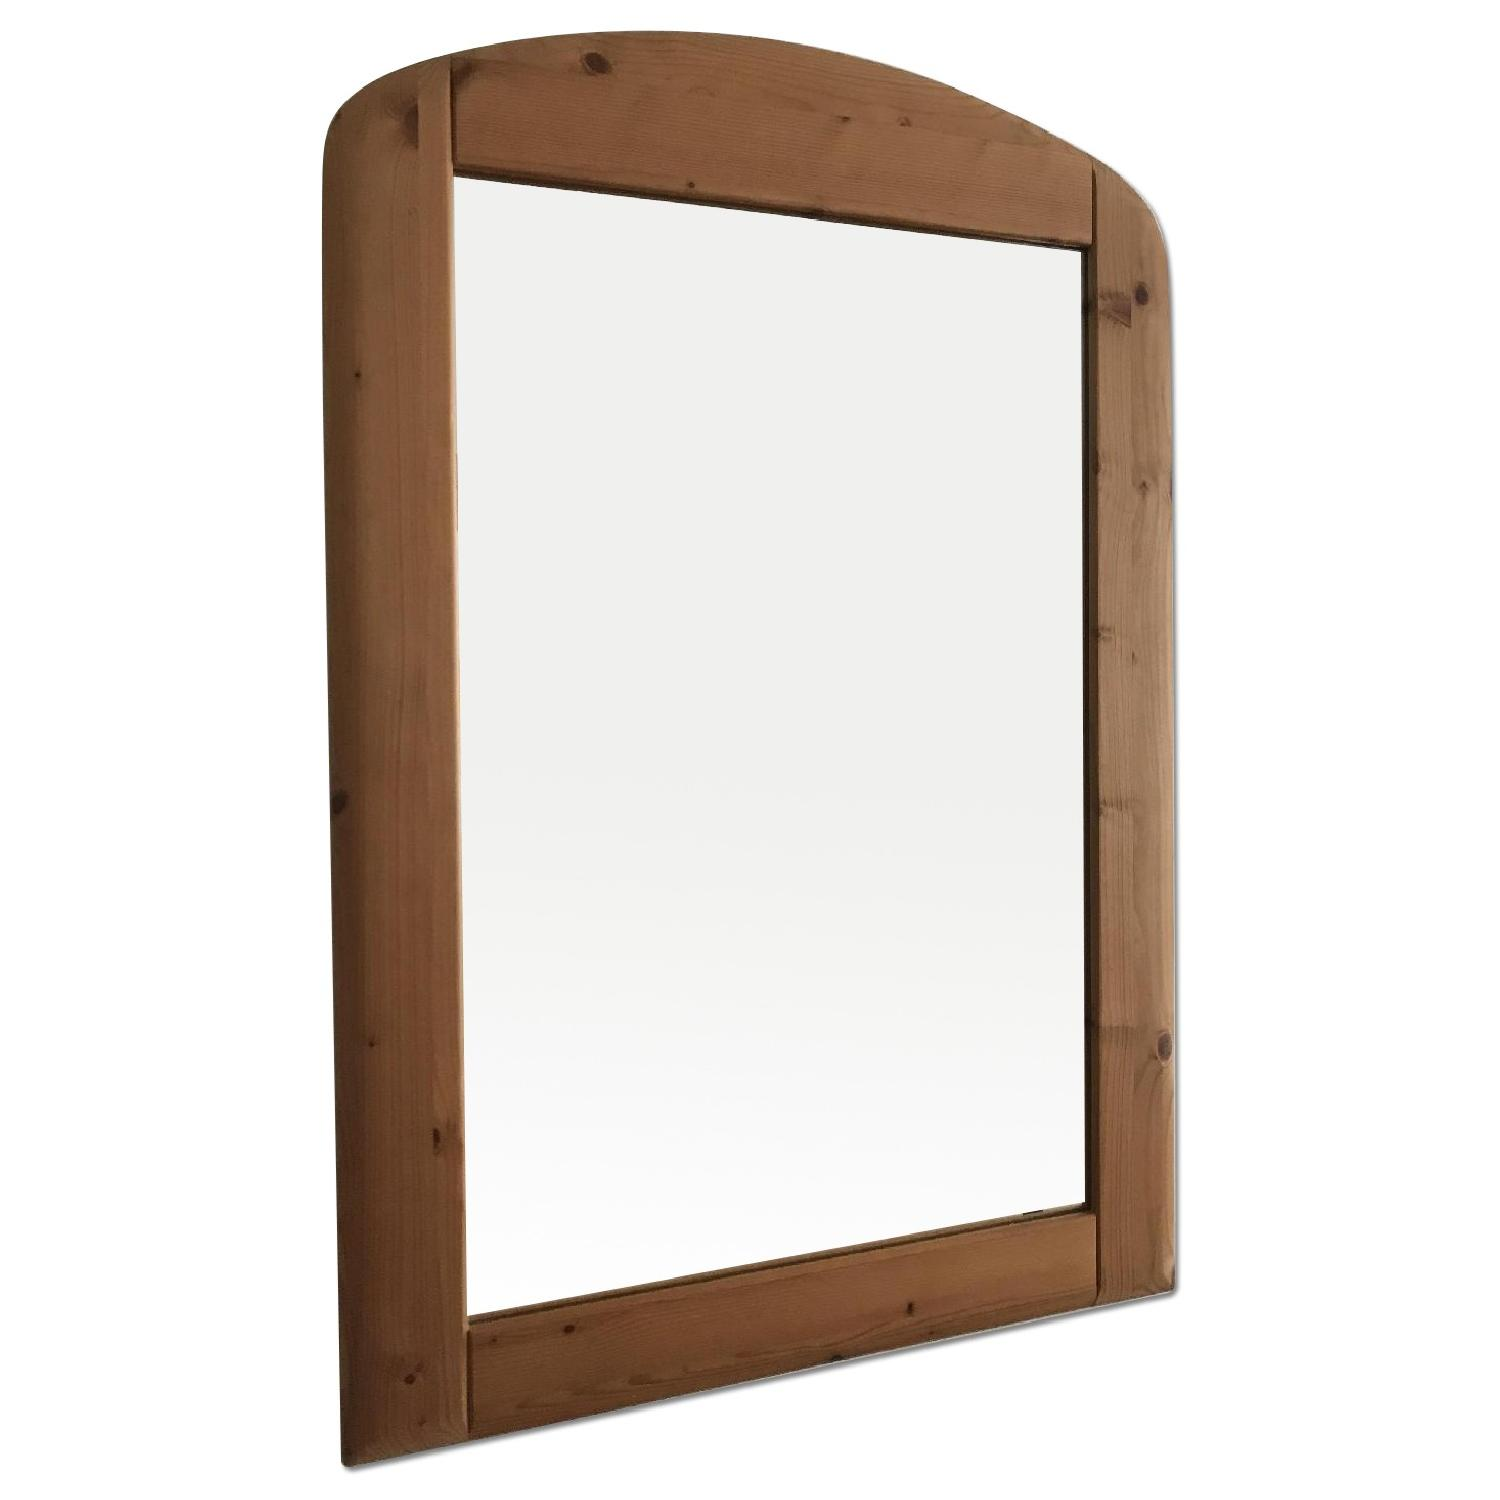 German Solid Pine Wood Framed Mirror